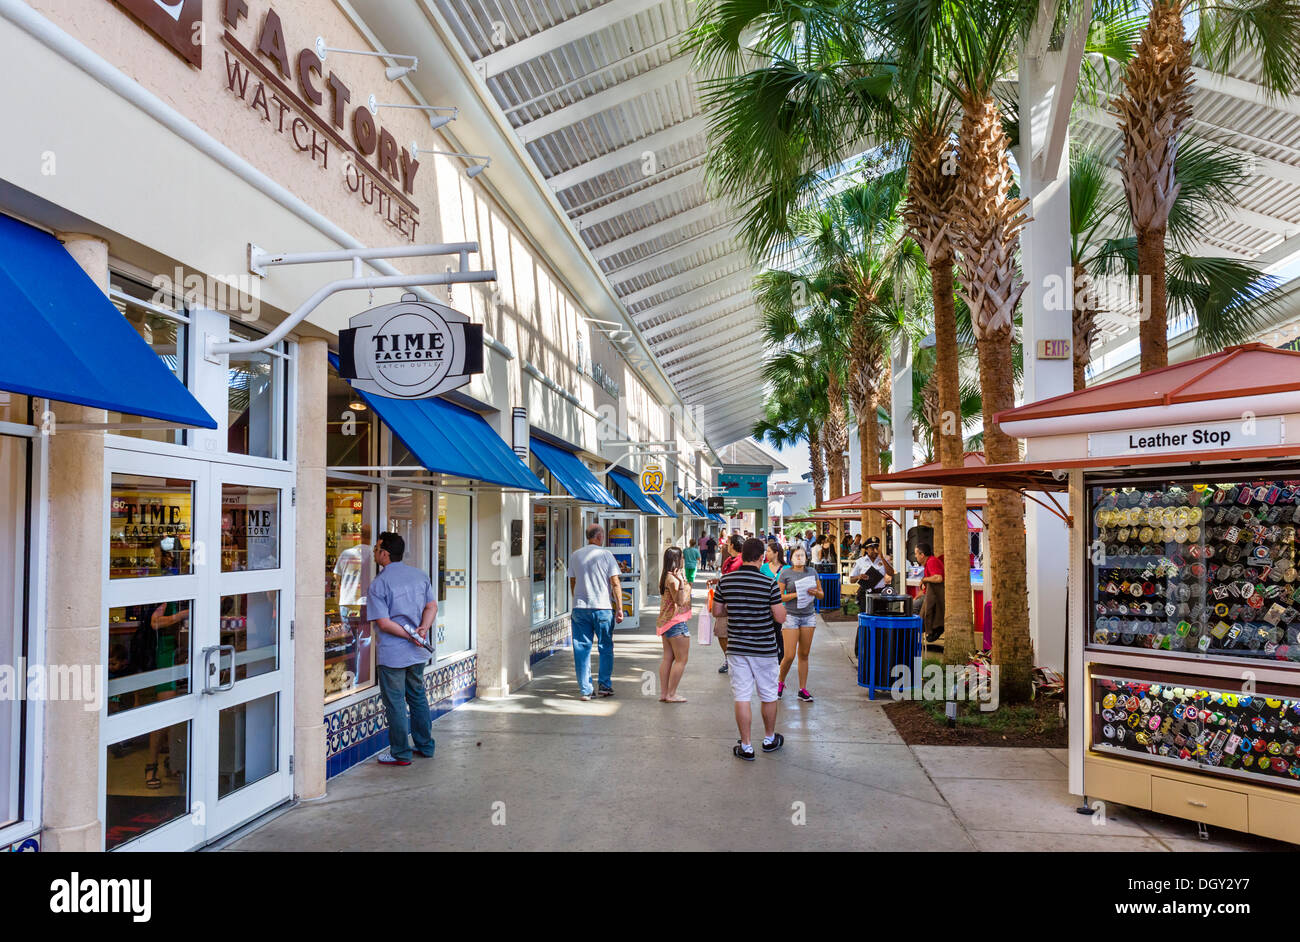 Orlando International Premium Outlets is arguably the city's most popular shopping destination, offering discounts between 25% and 65% on an enormous range of designer brands.